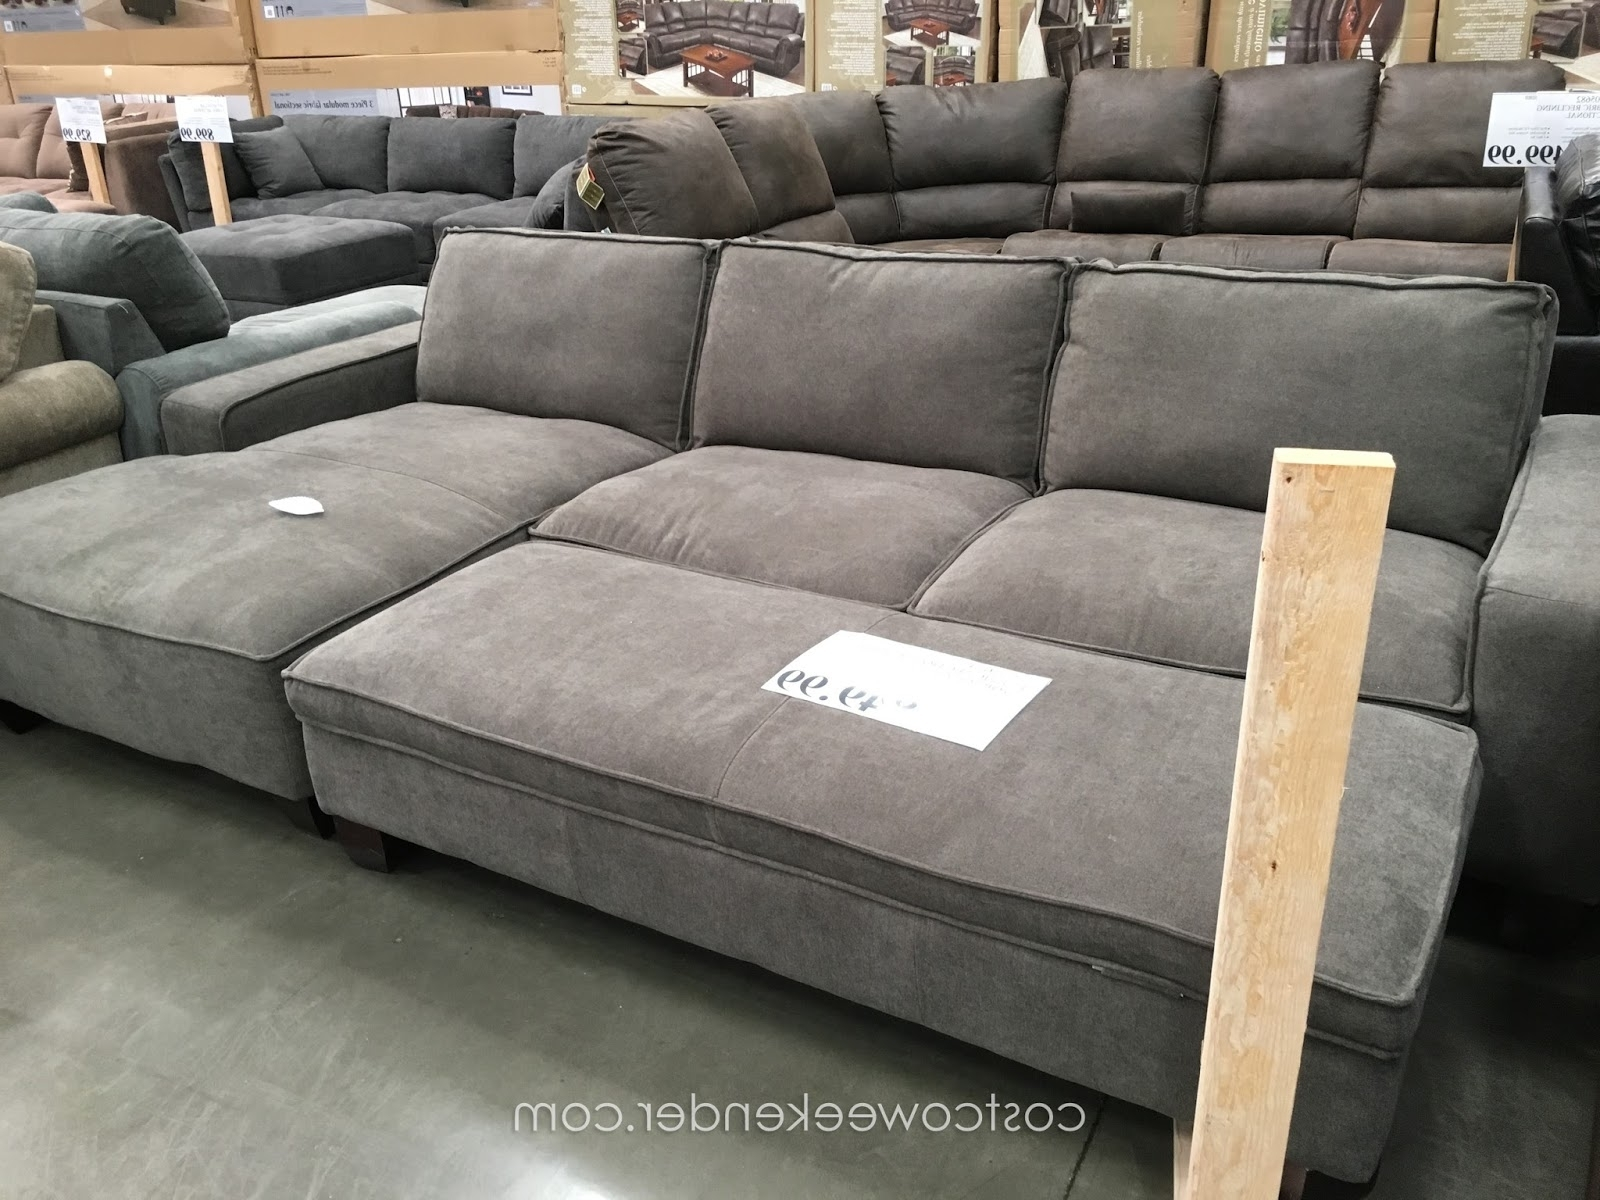 Sectional Sofa Design: Lovely Sectional Sofas Costco Leather Throughout Well Known Grey Chaise Sectionals (View 13 of 15)